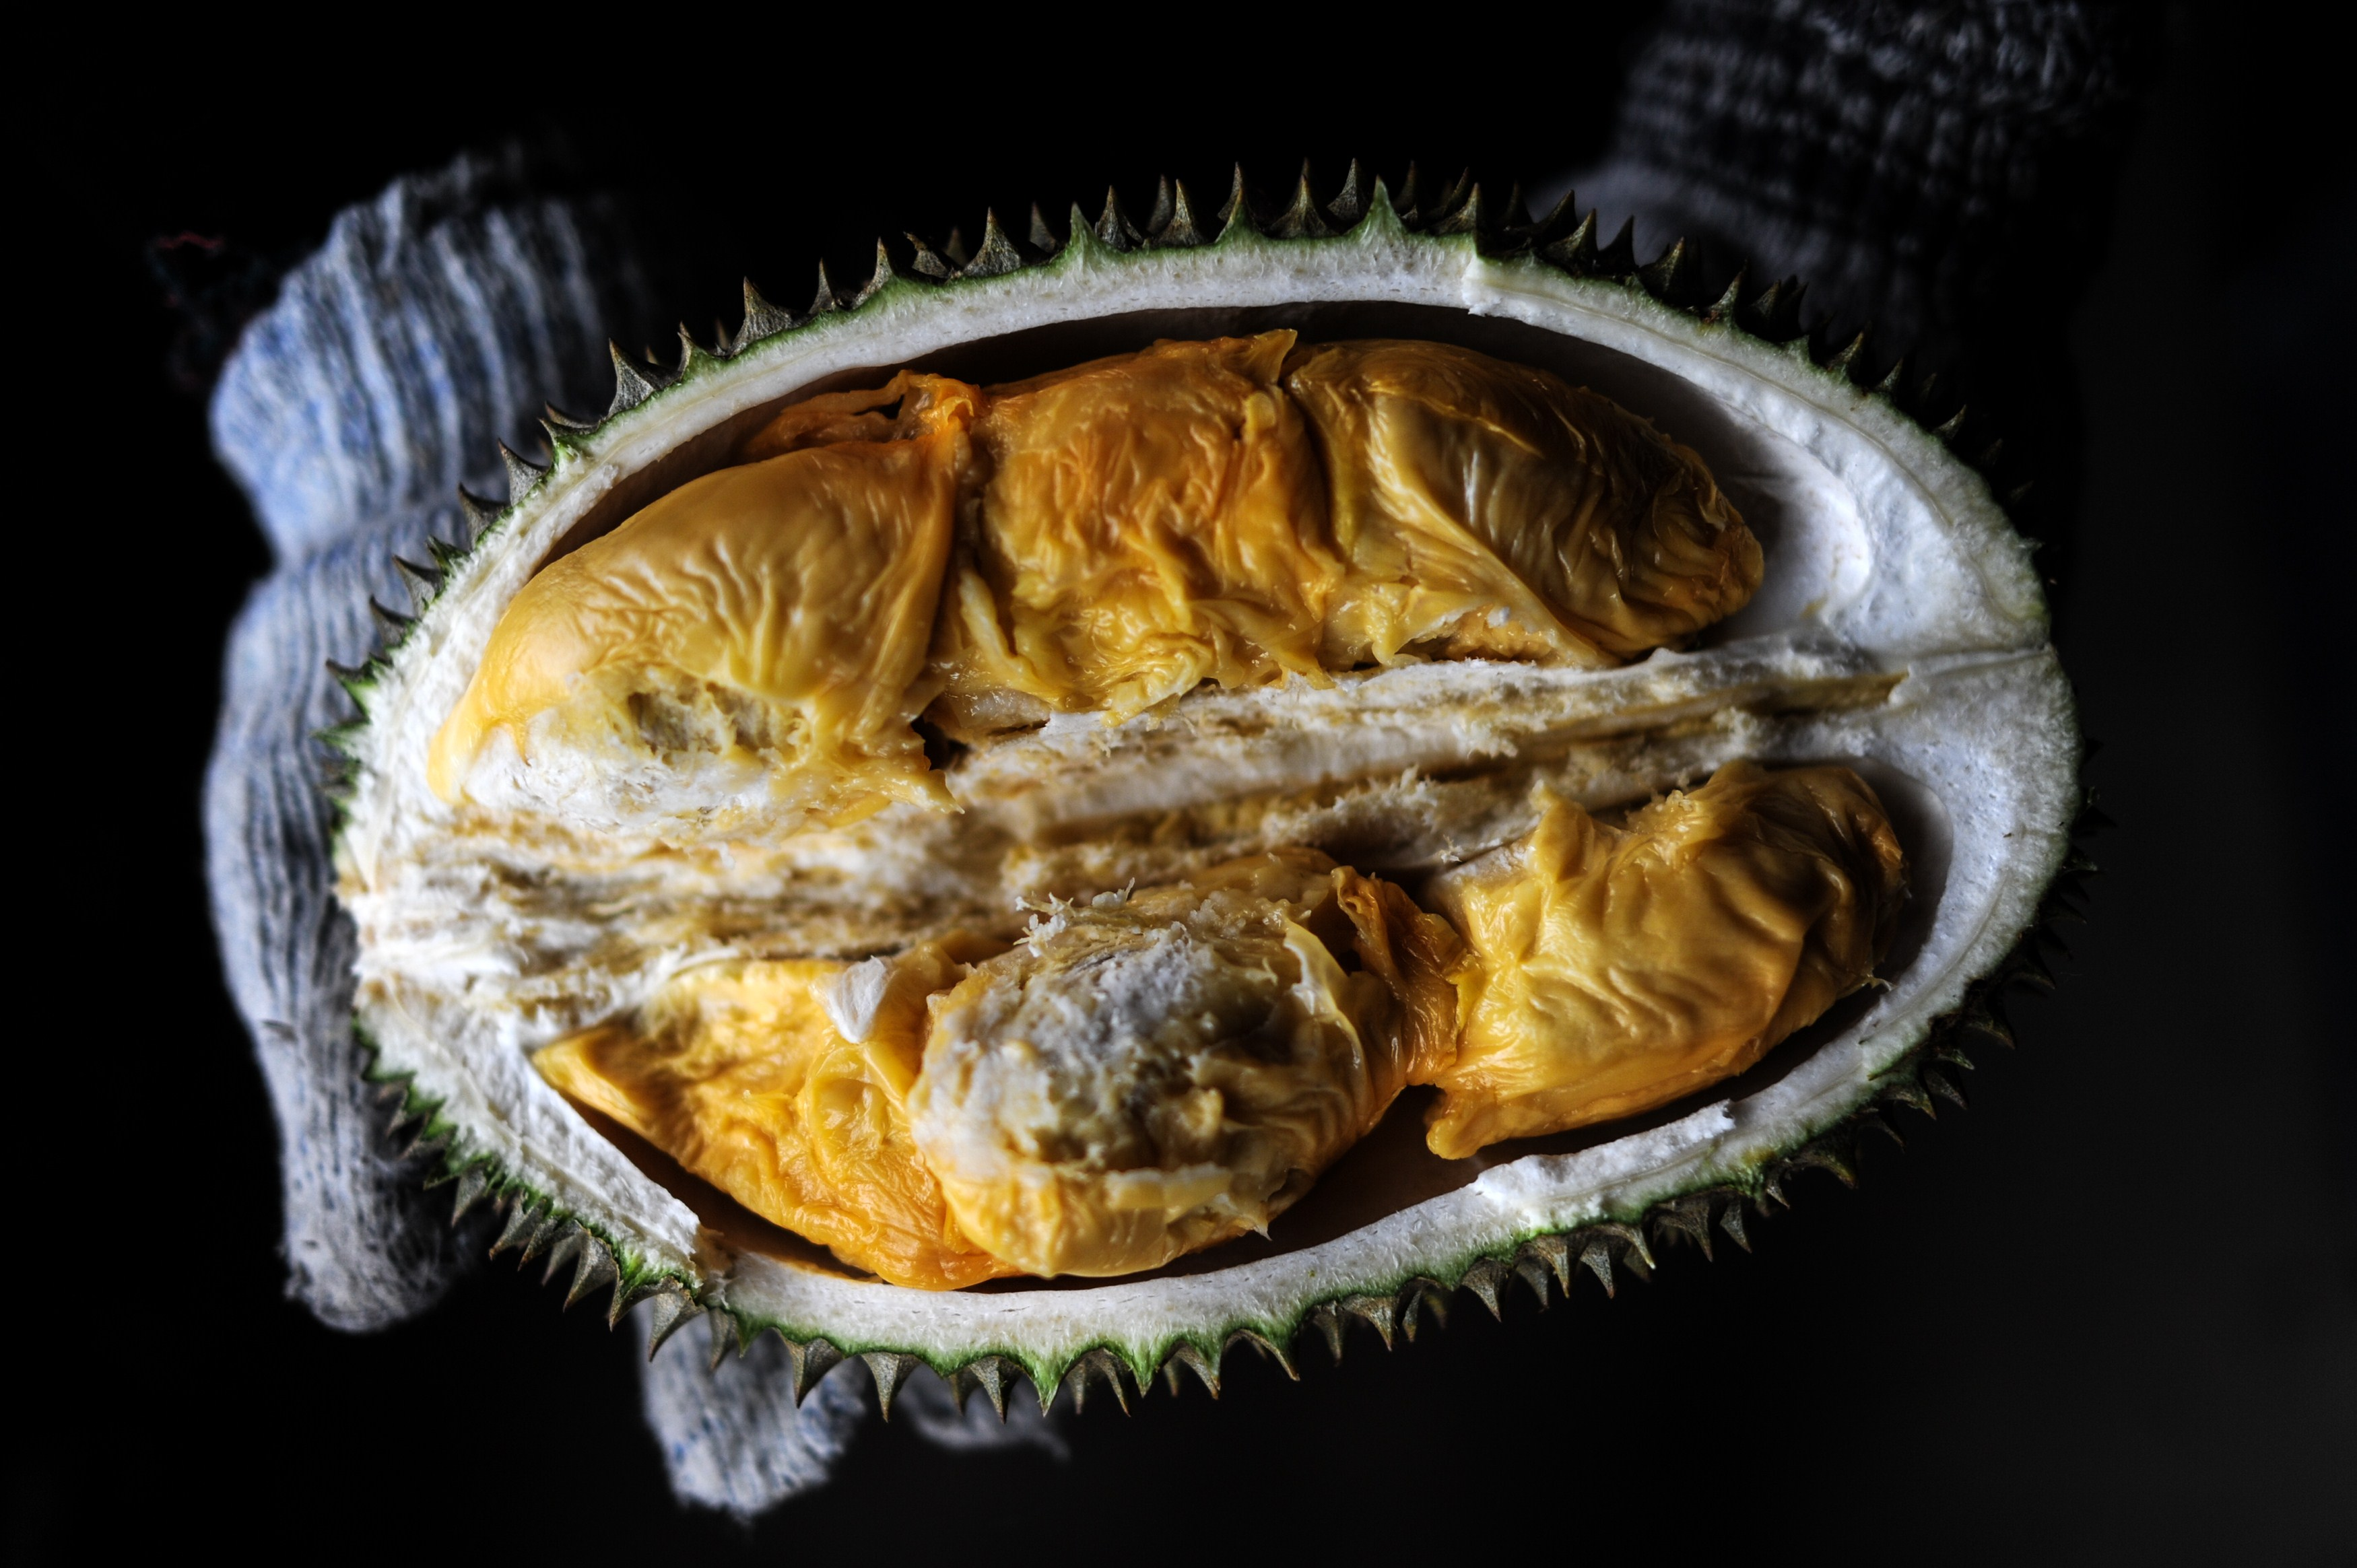 A vendor displays the cross section of a durian fruit in the suburbs outside Kuala Lumpur on July 14, 2015.